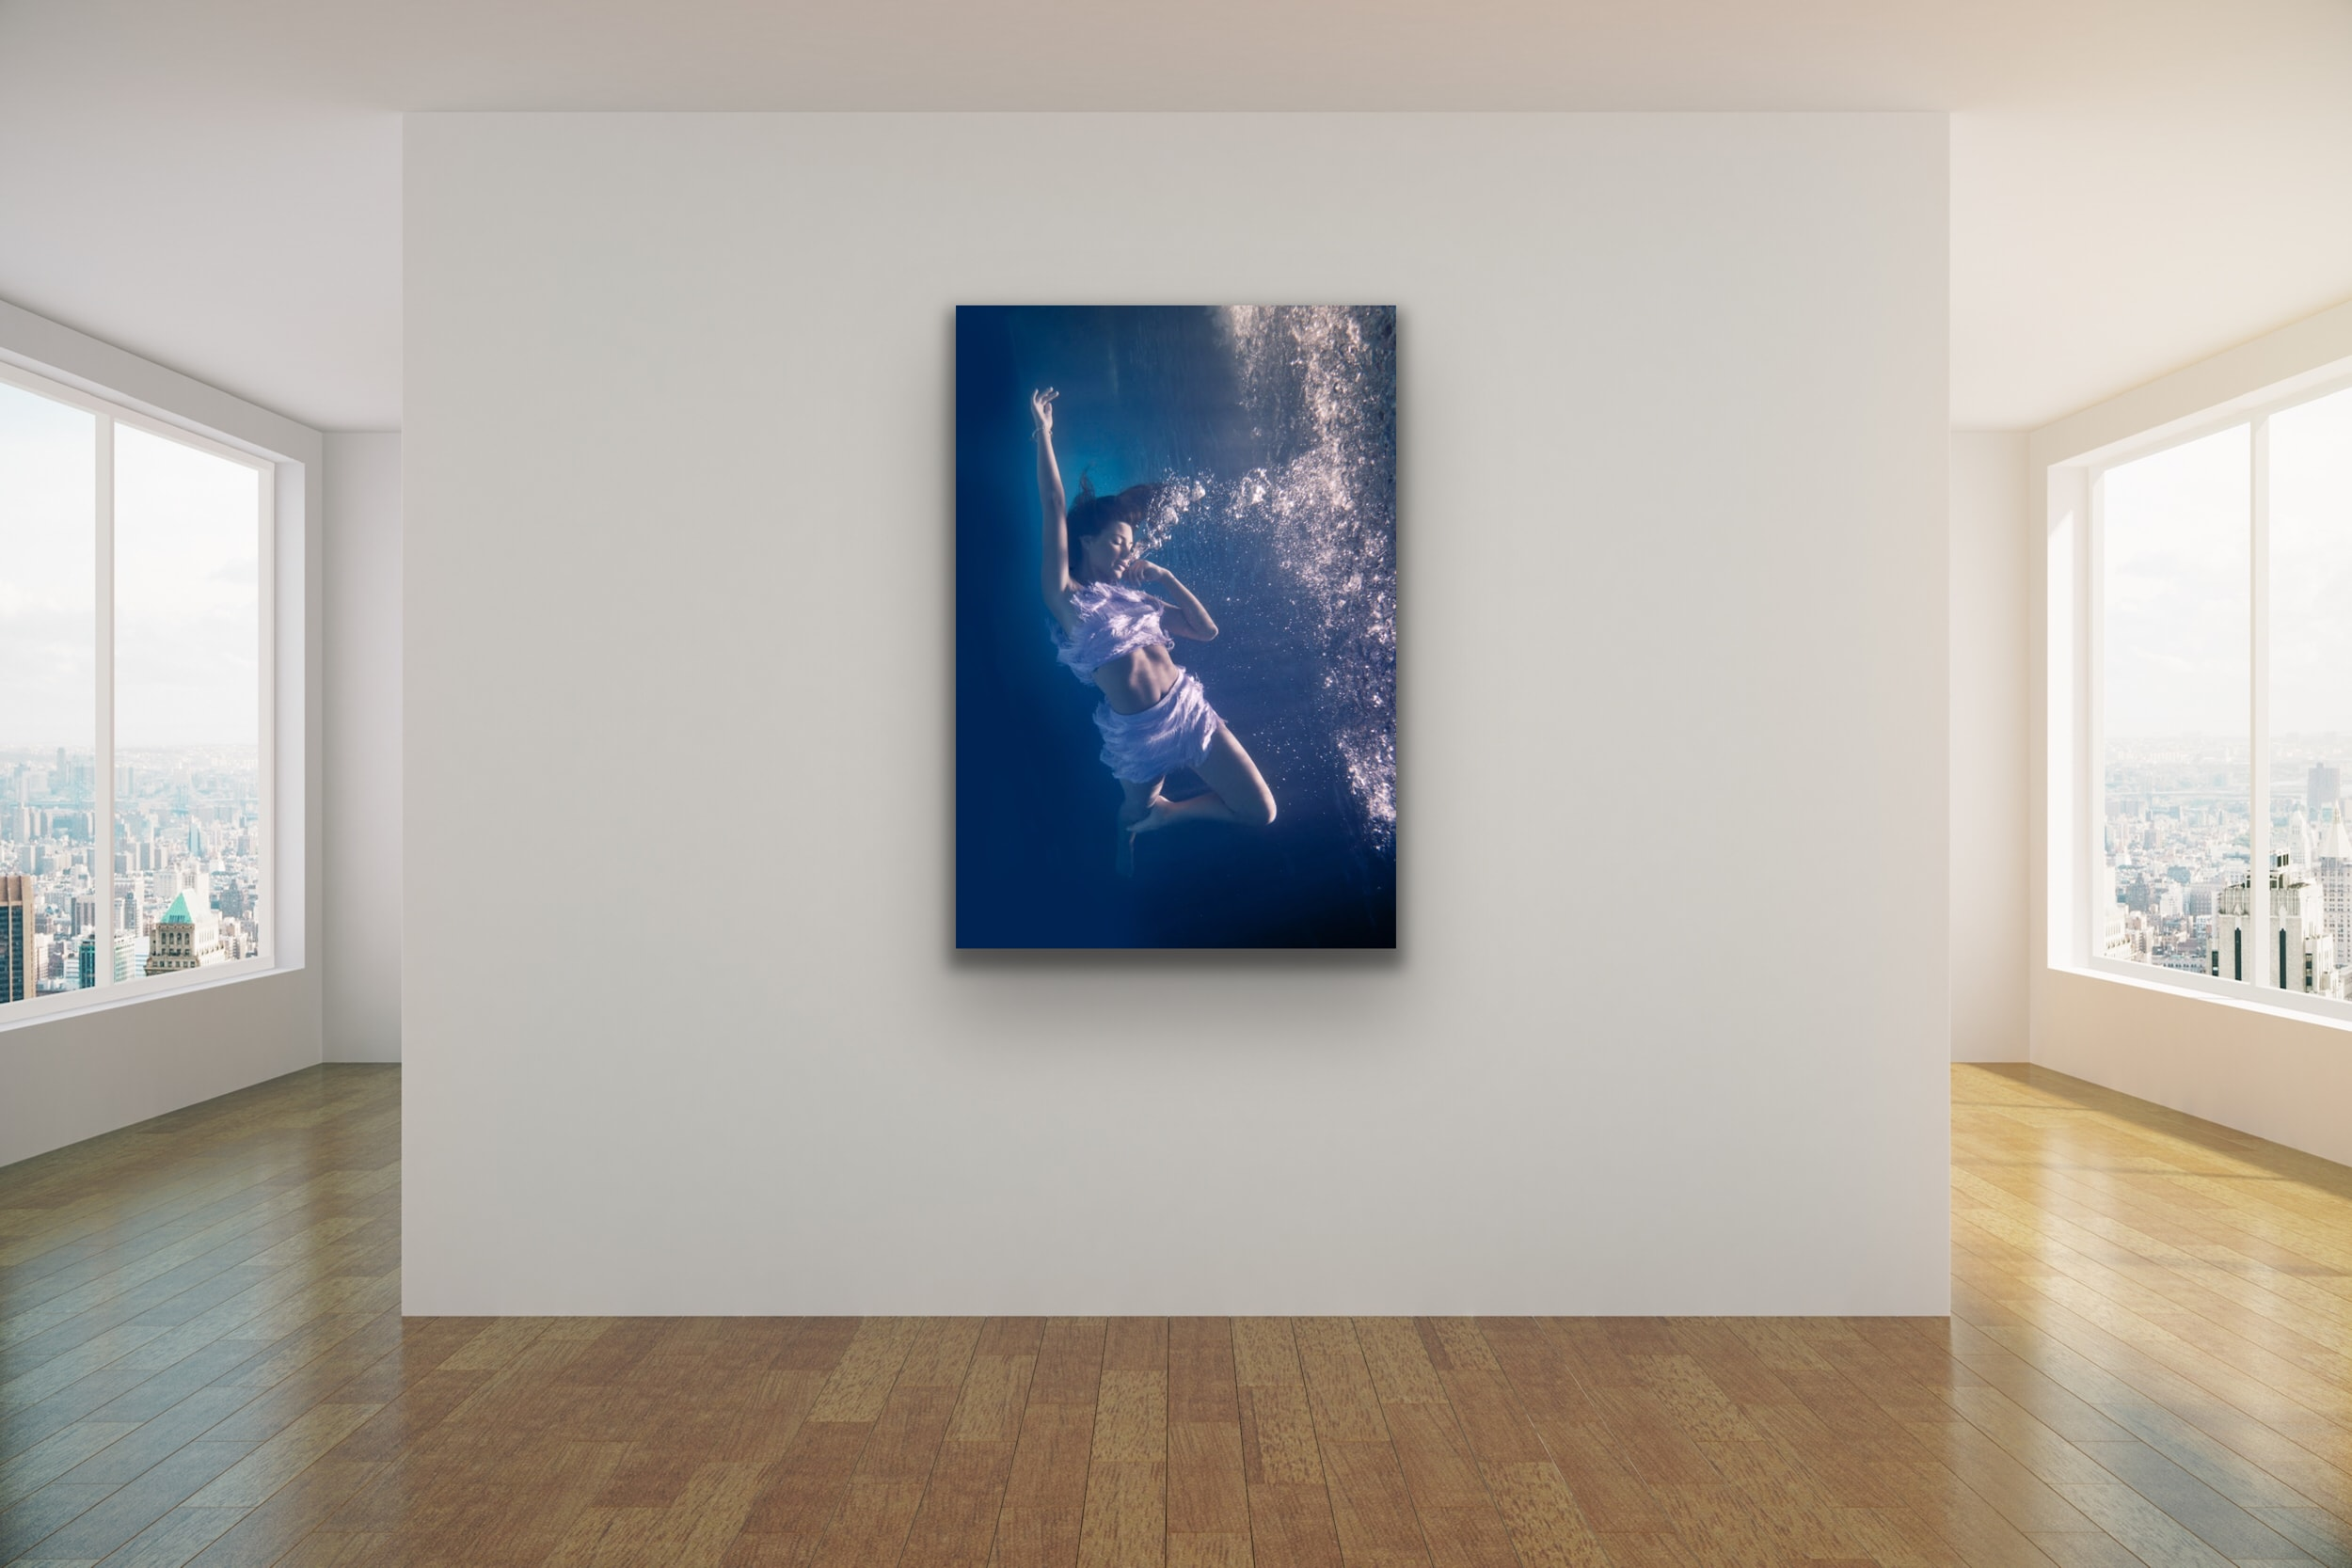 <div class='title'>           Kelly Hsiao   11 Breathe into Azure         </div>